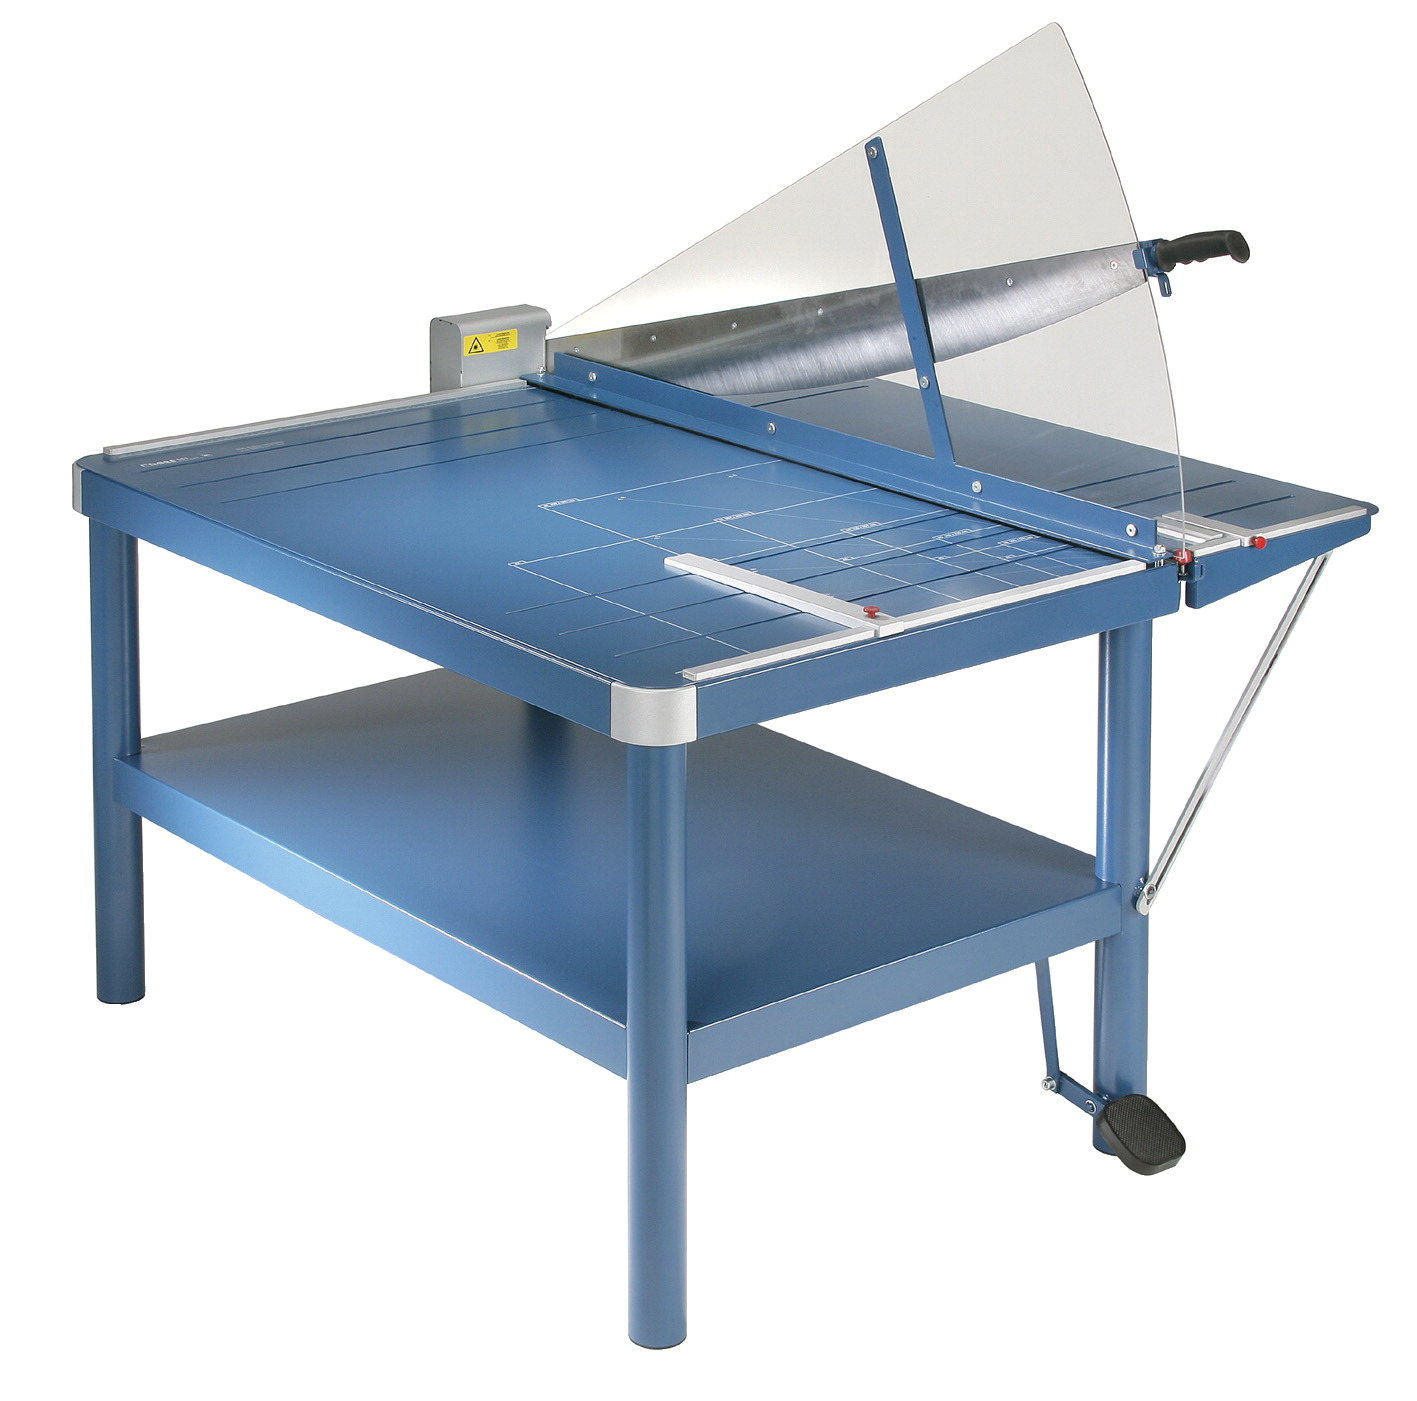 Dahle Paper Cutter School Specialty Marketplace